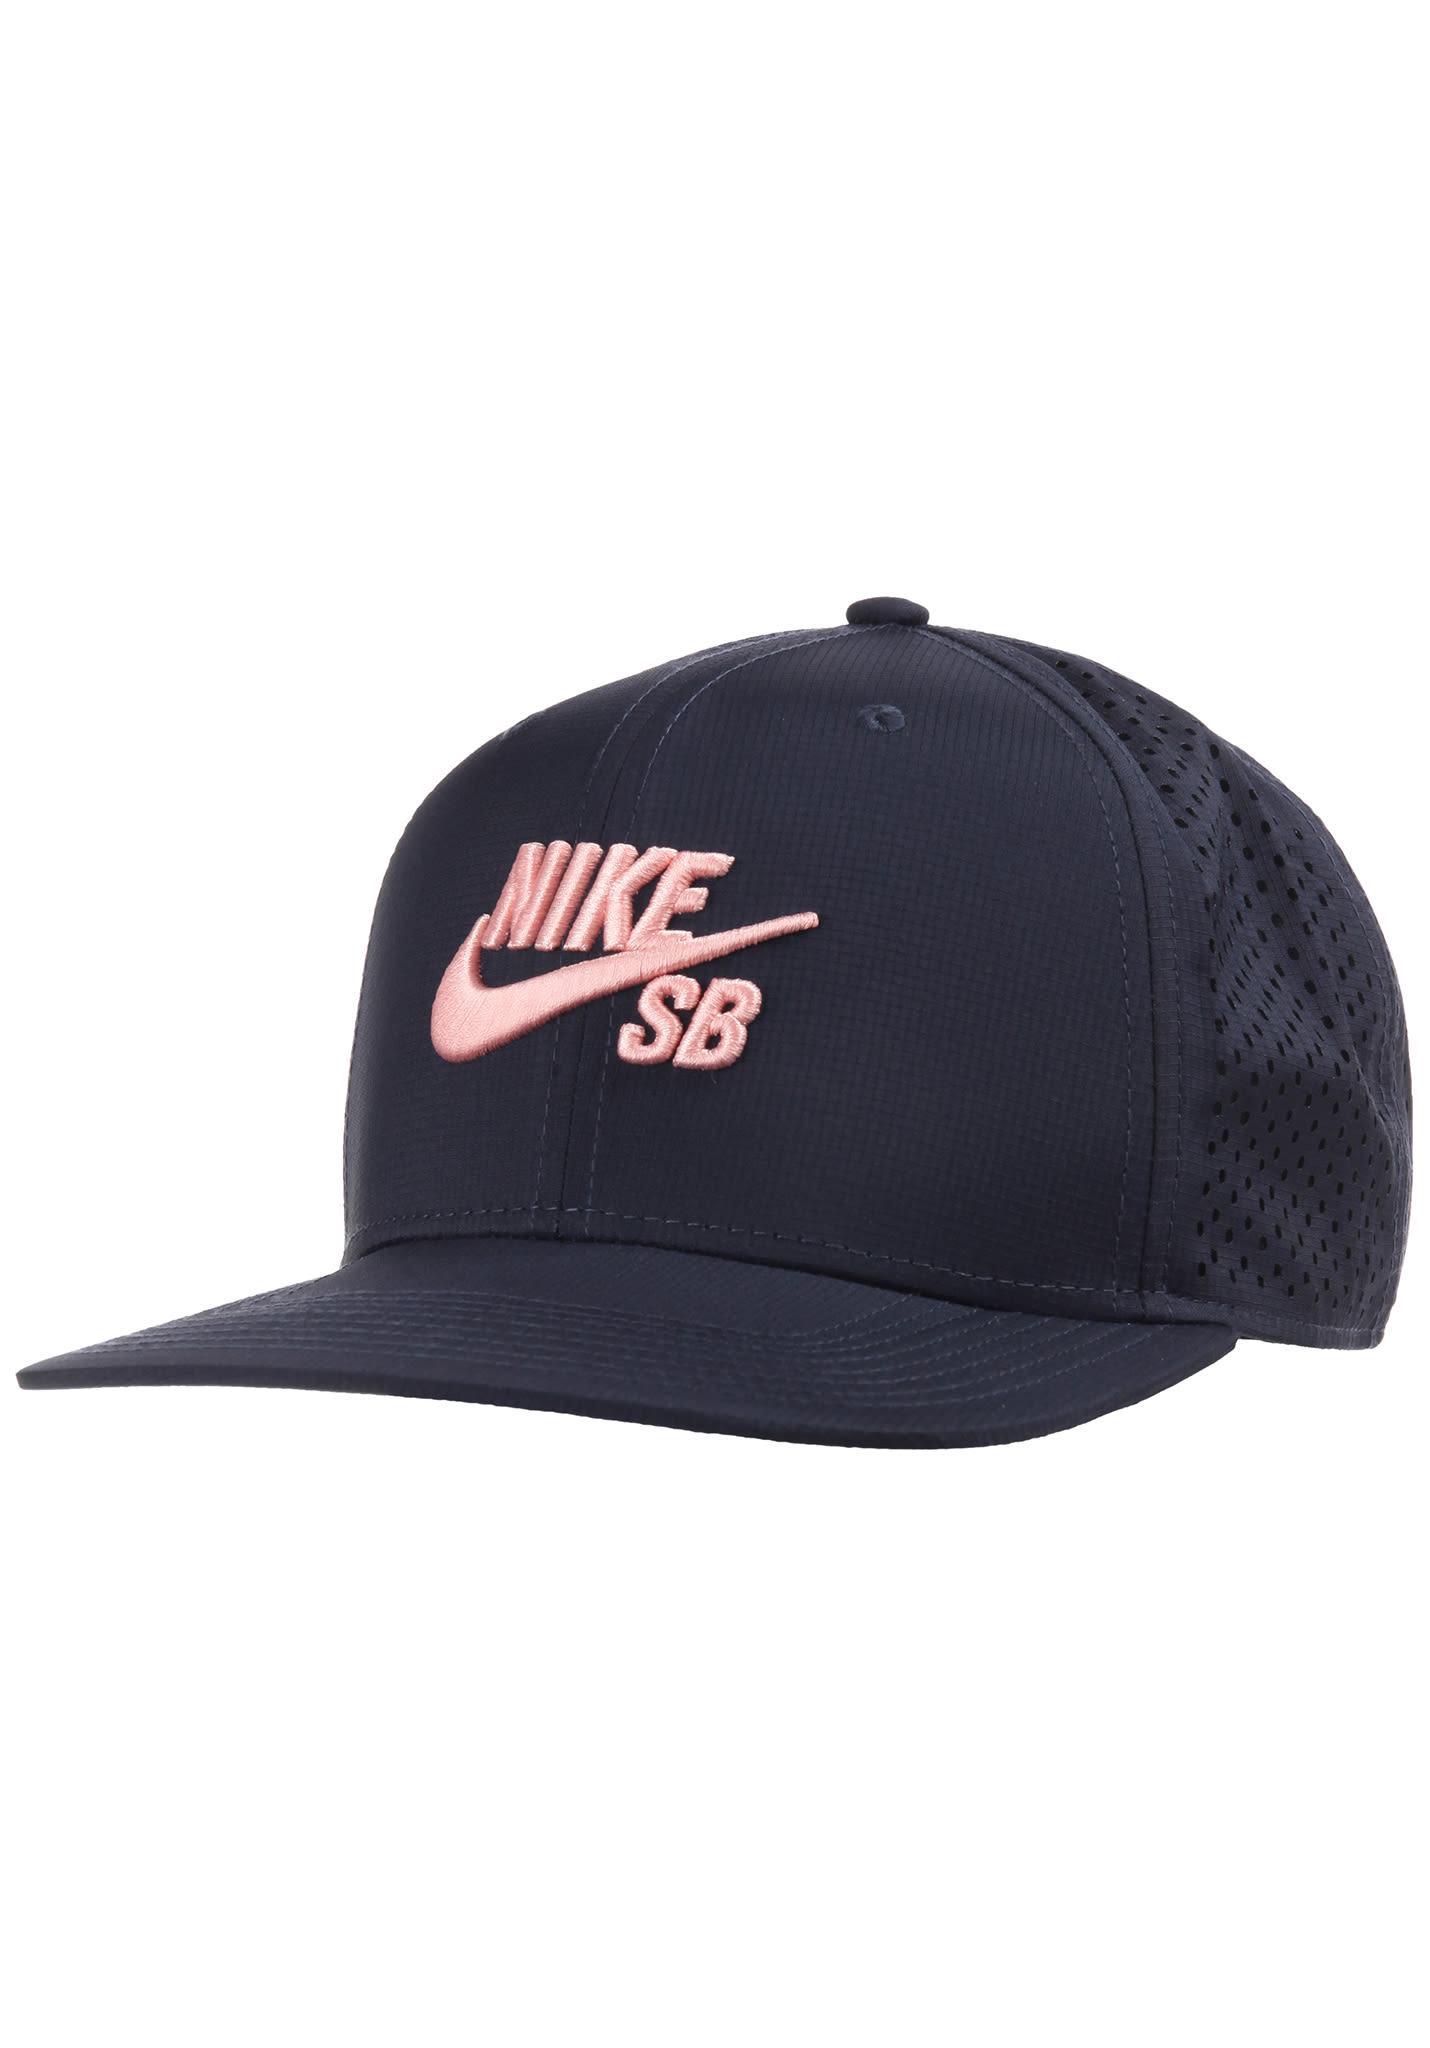 c51b1cb604 NIKE SB Arobill Pro - Trucker Cap - Blue - Planet Sports